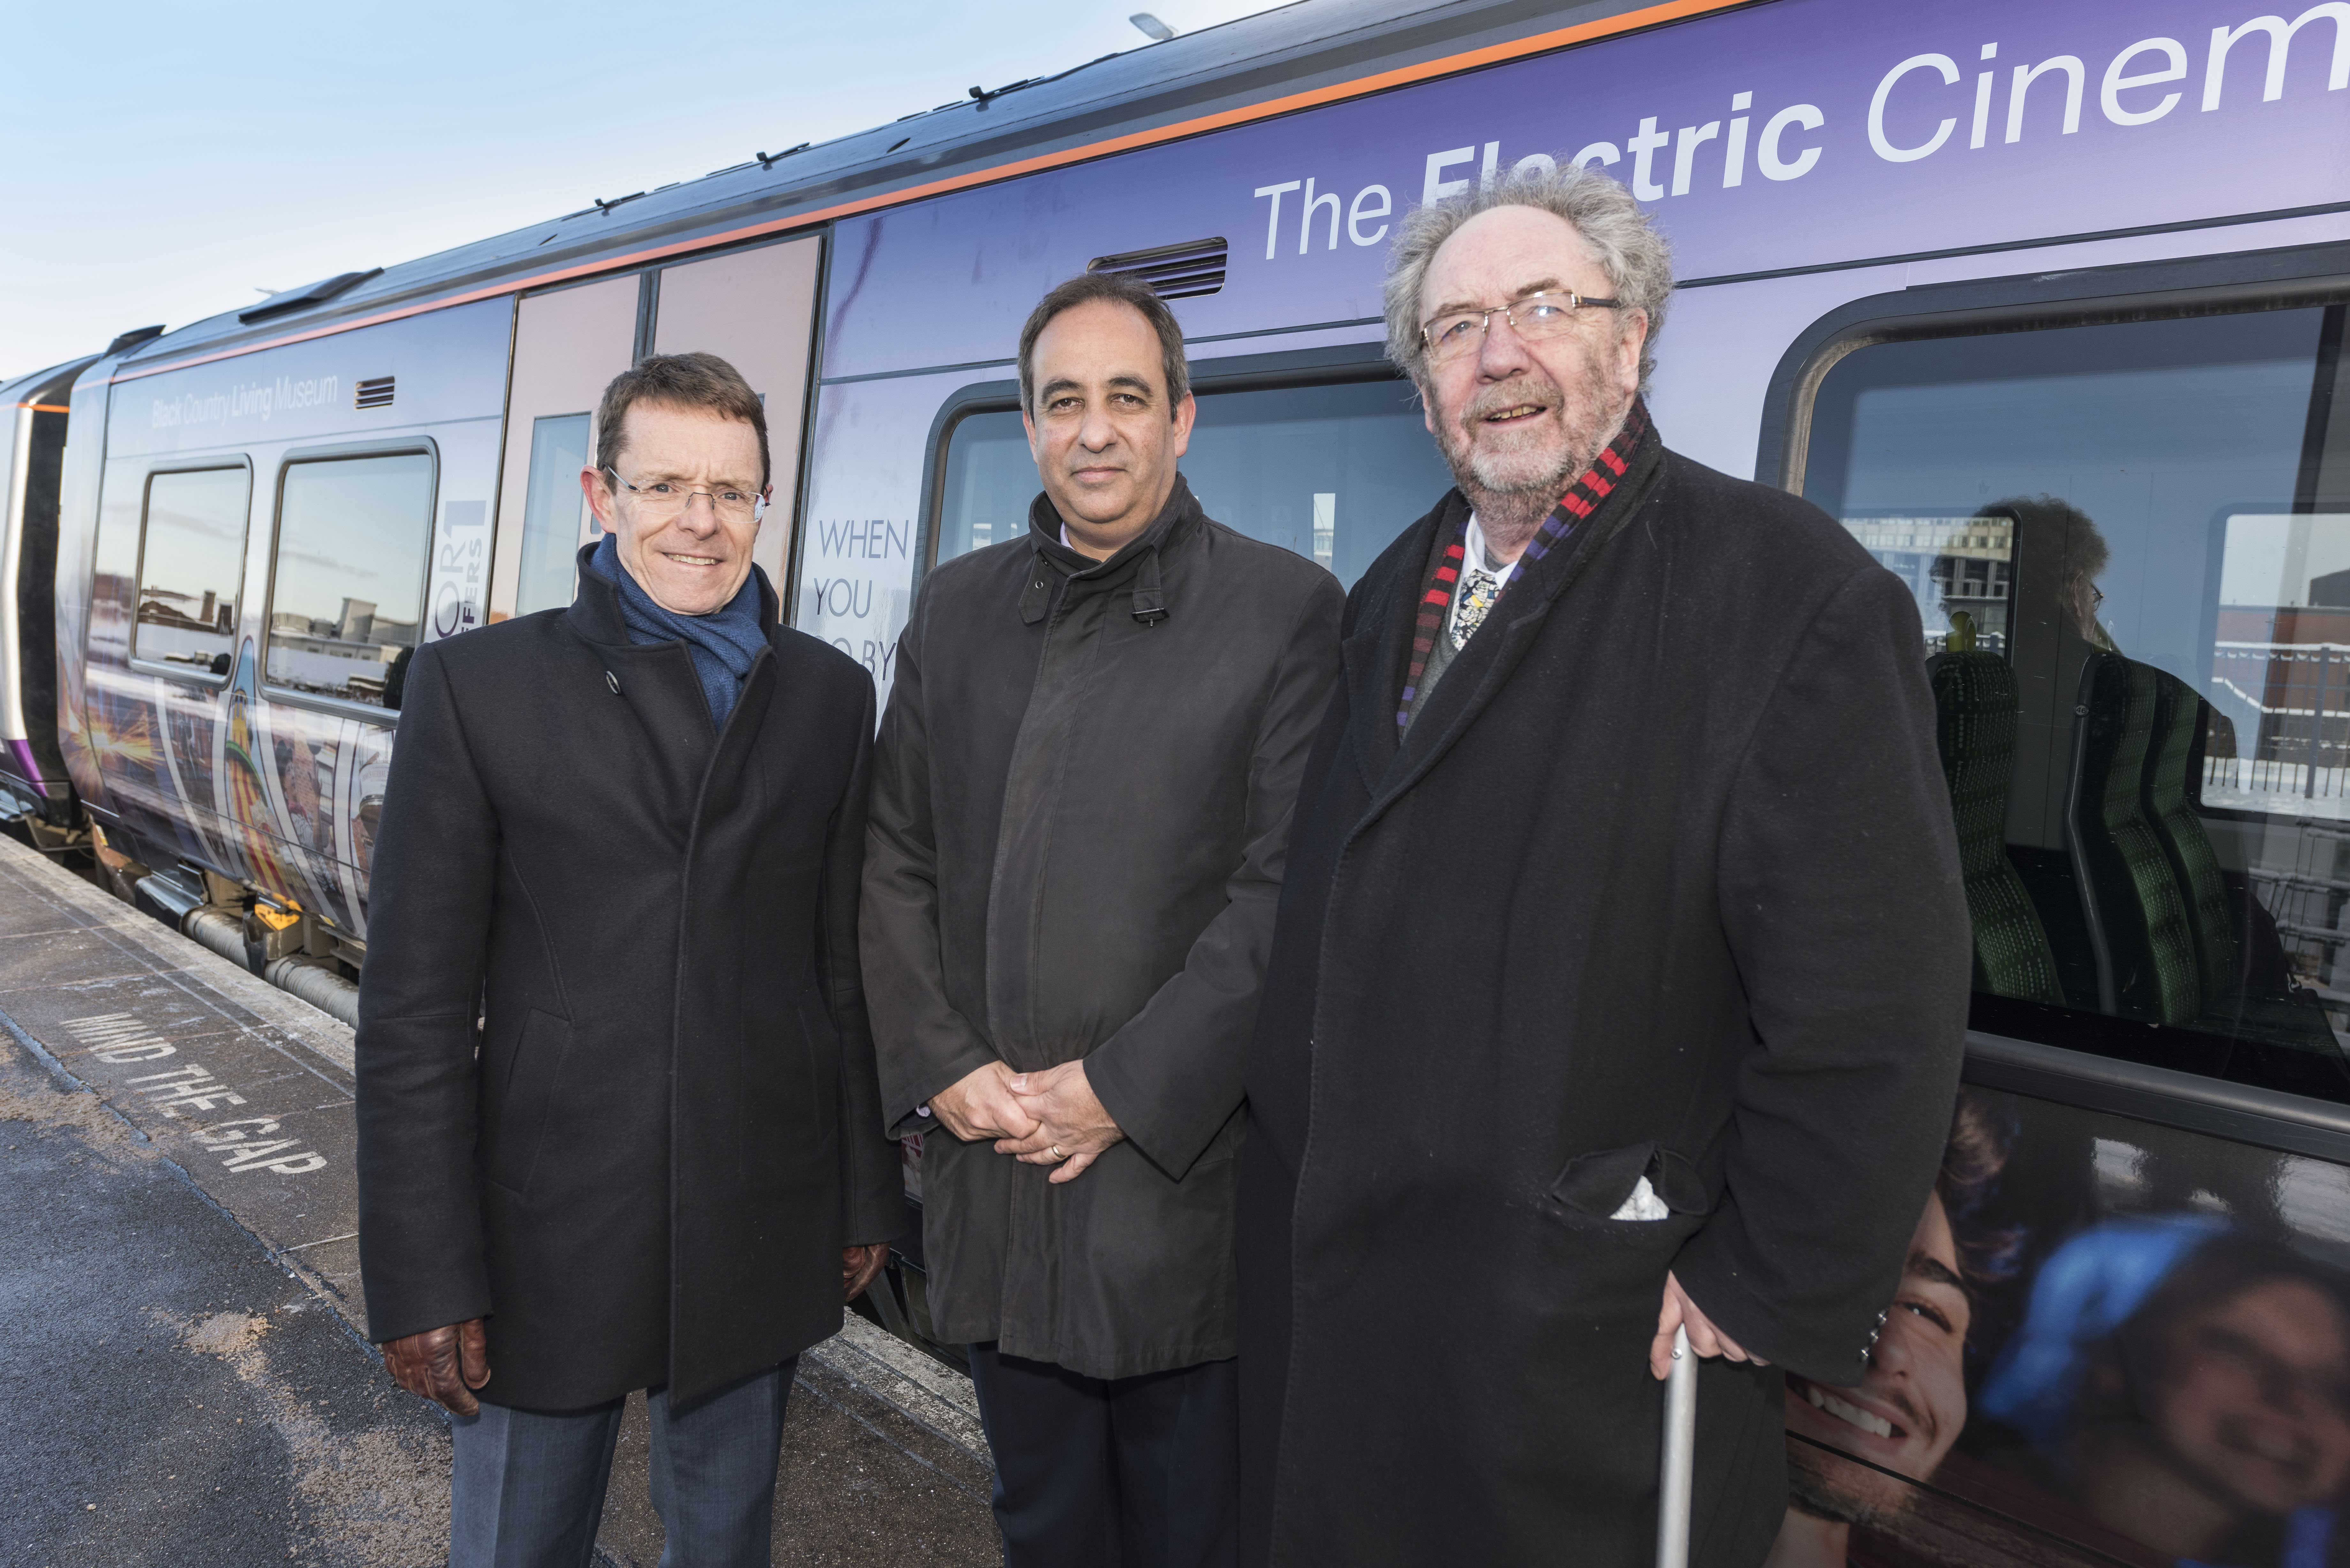 New era of better trains and services as control of region's rail network moves into local hands